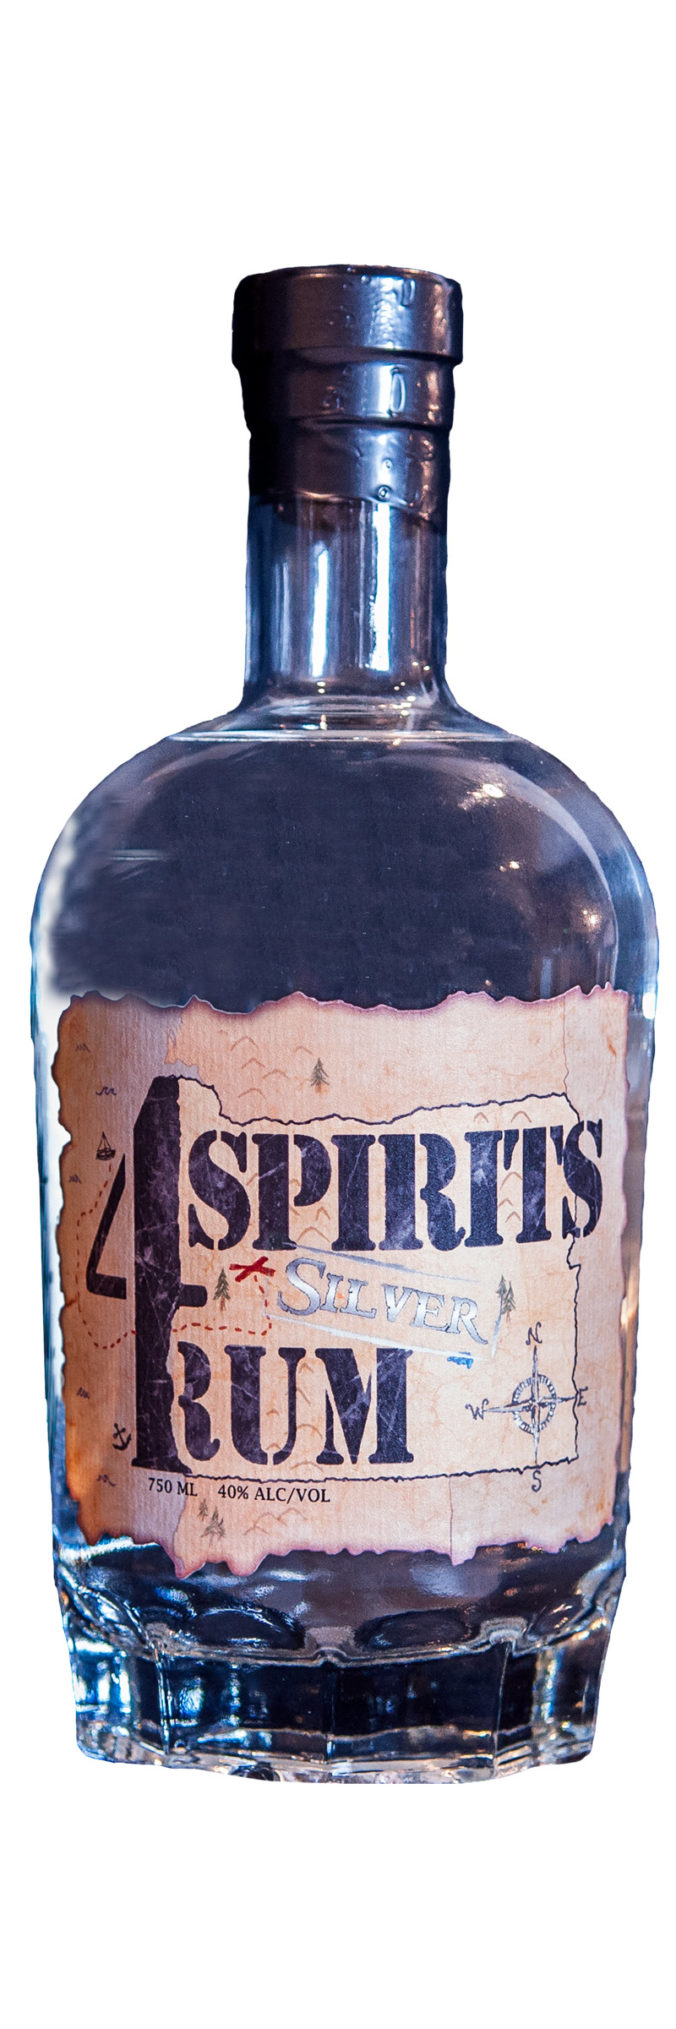 4 Spirits Silver Rum from Orgeon